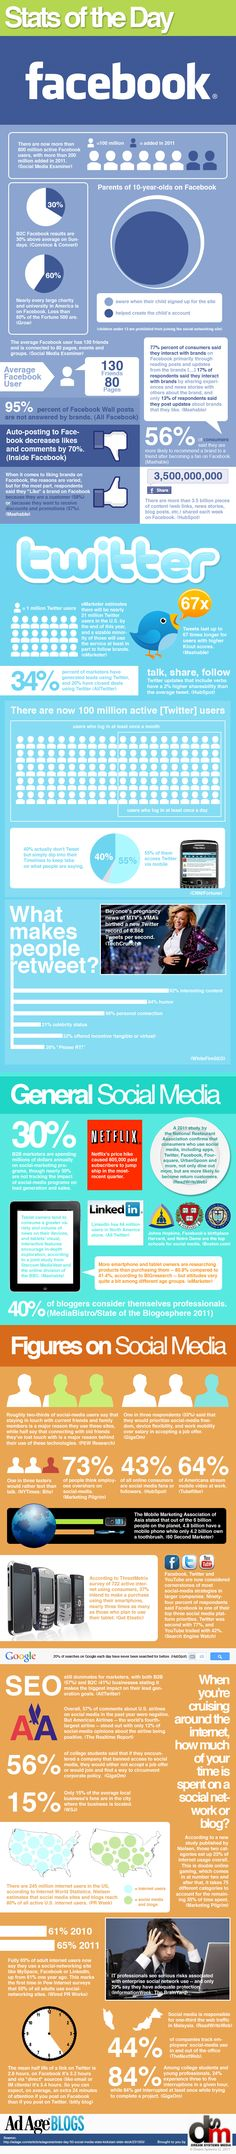 Stats of the Day. An almost bewildering number of stats on social media use, but it's in 'bite-sized' chunks so easy to understand as well as useful. Posted 7 Dec 2011 - res. 576 x 5264    [Duplicate of my post on Social Media Infographics Board, but with original link this time]